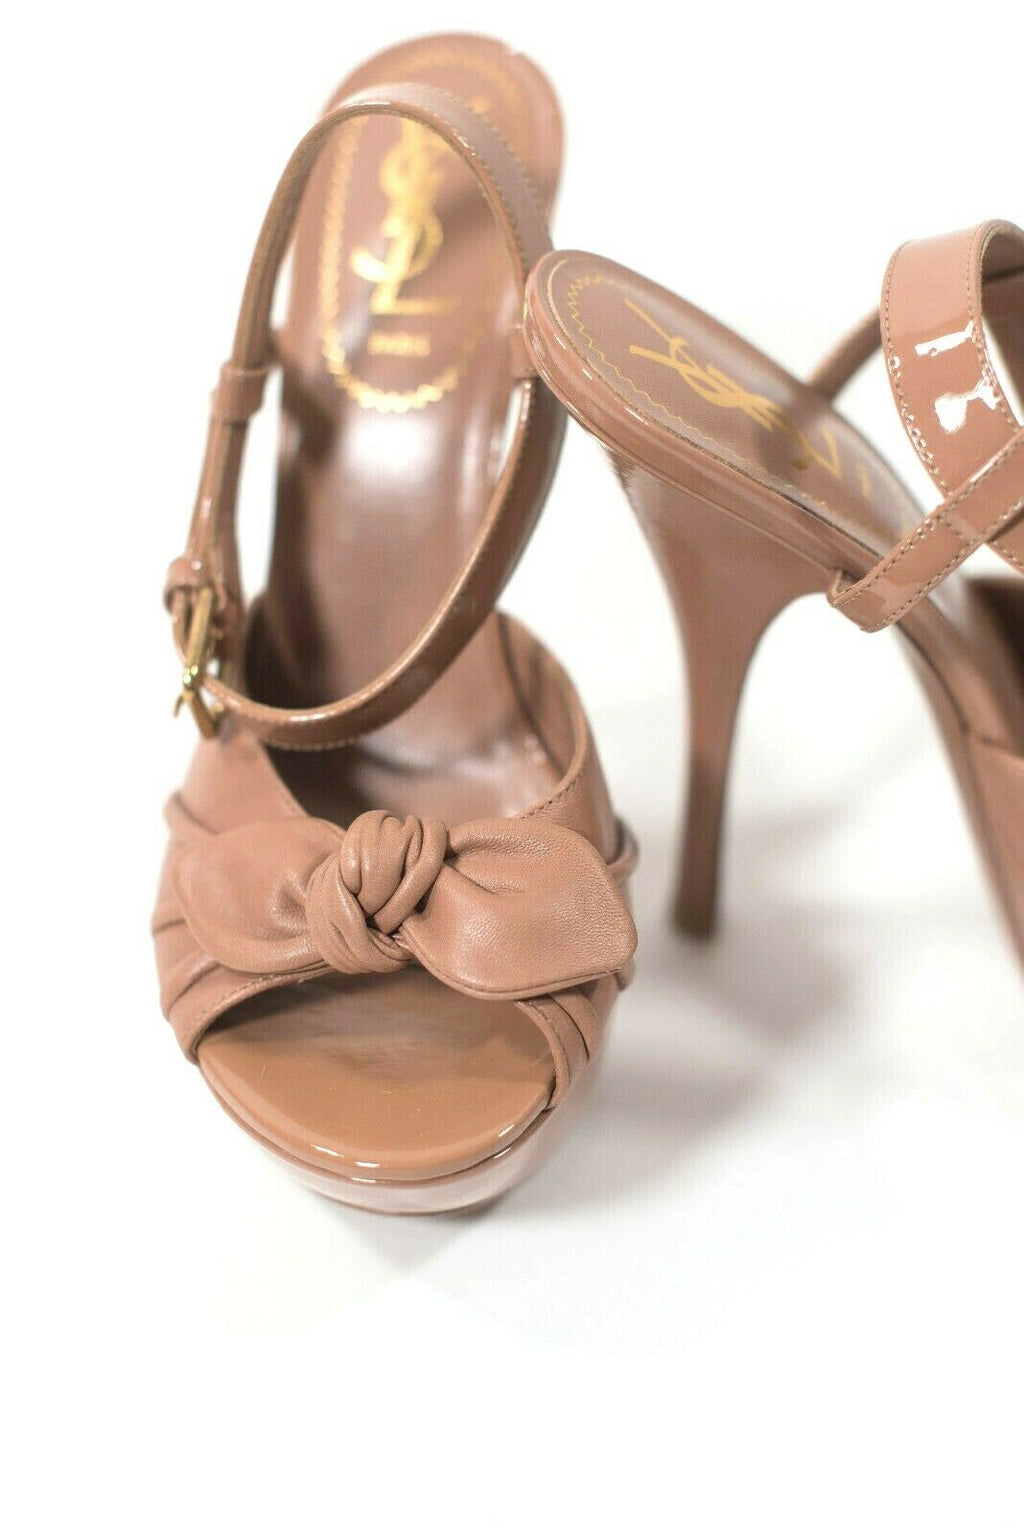 YSL Yves Saint Laurent Womens 37 Brown Sandals Poppy 105 Open Toe Bow Stiletto